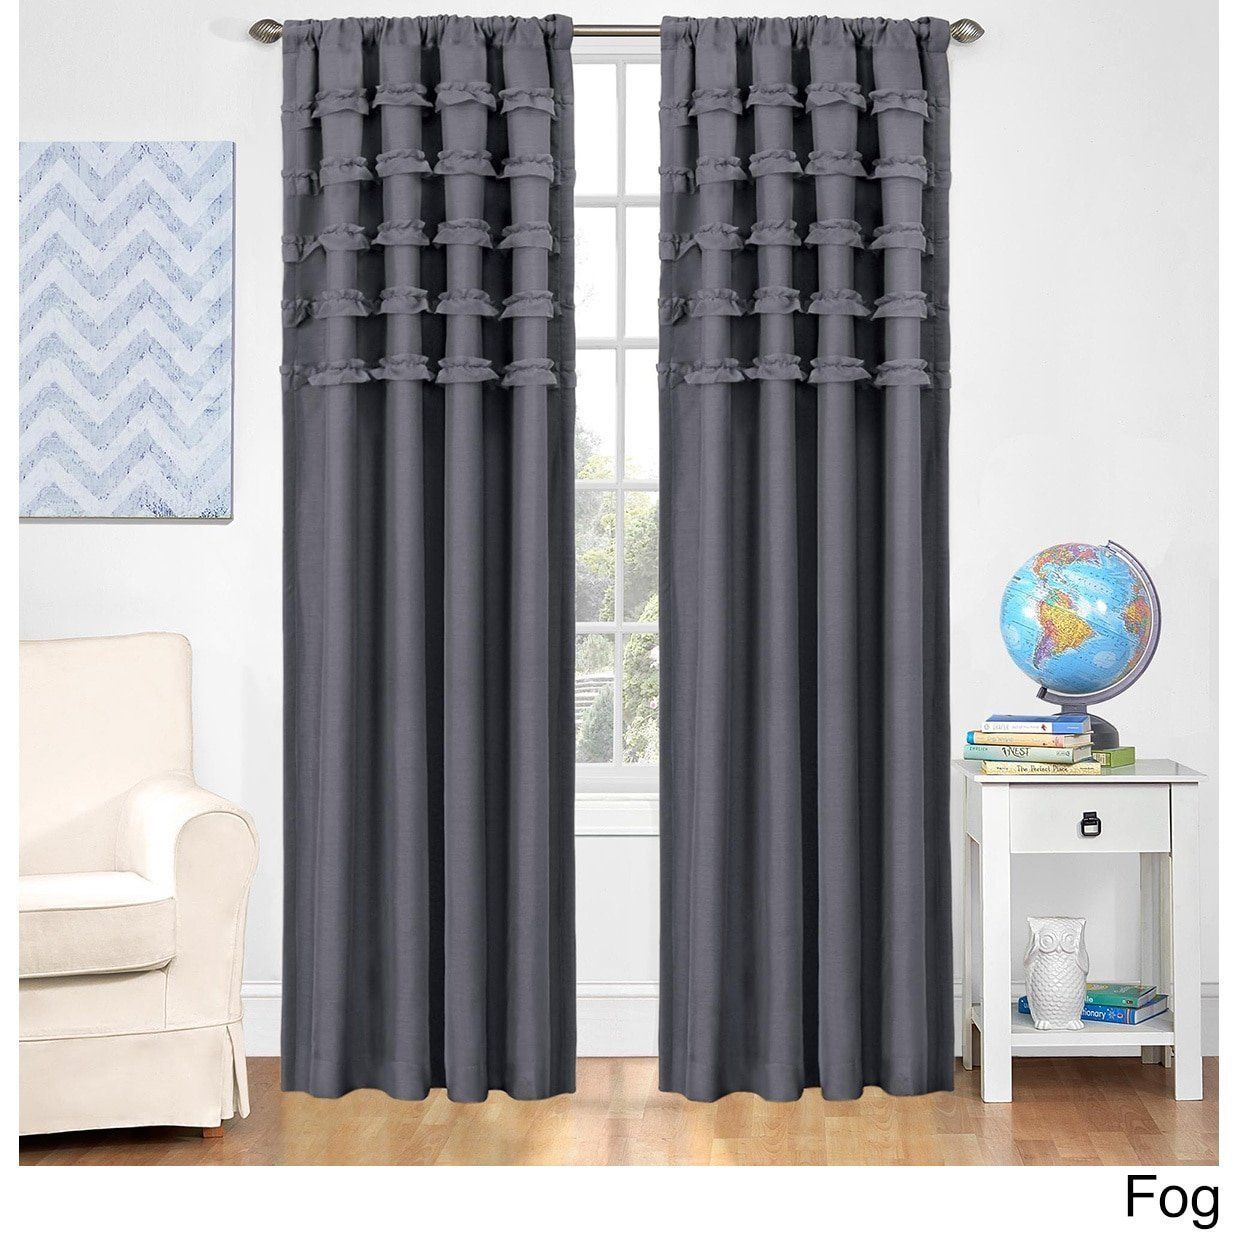 world decorating down and interior unique new about inch curtain that gorgeous rods colors thoughts upside for will turn rod window curtains with your